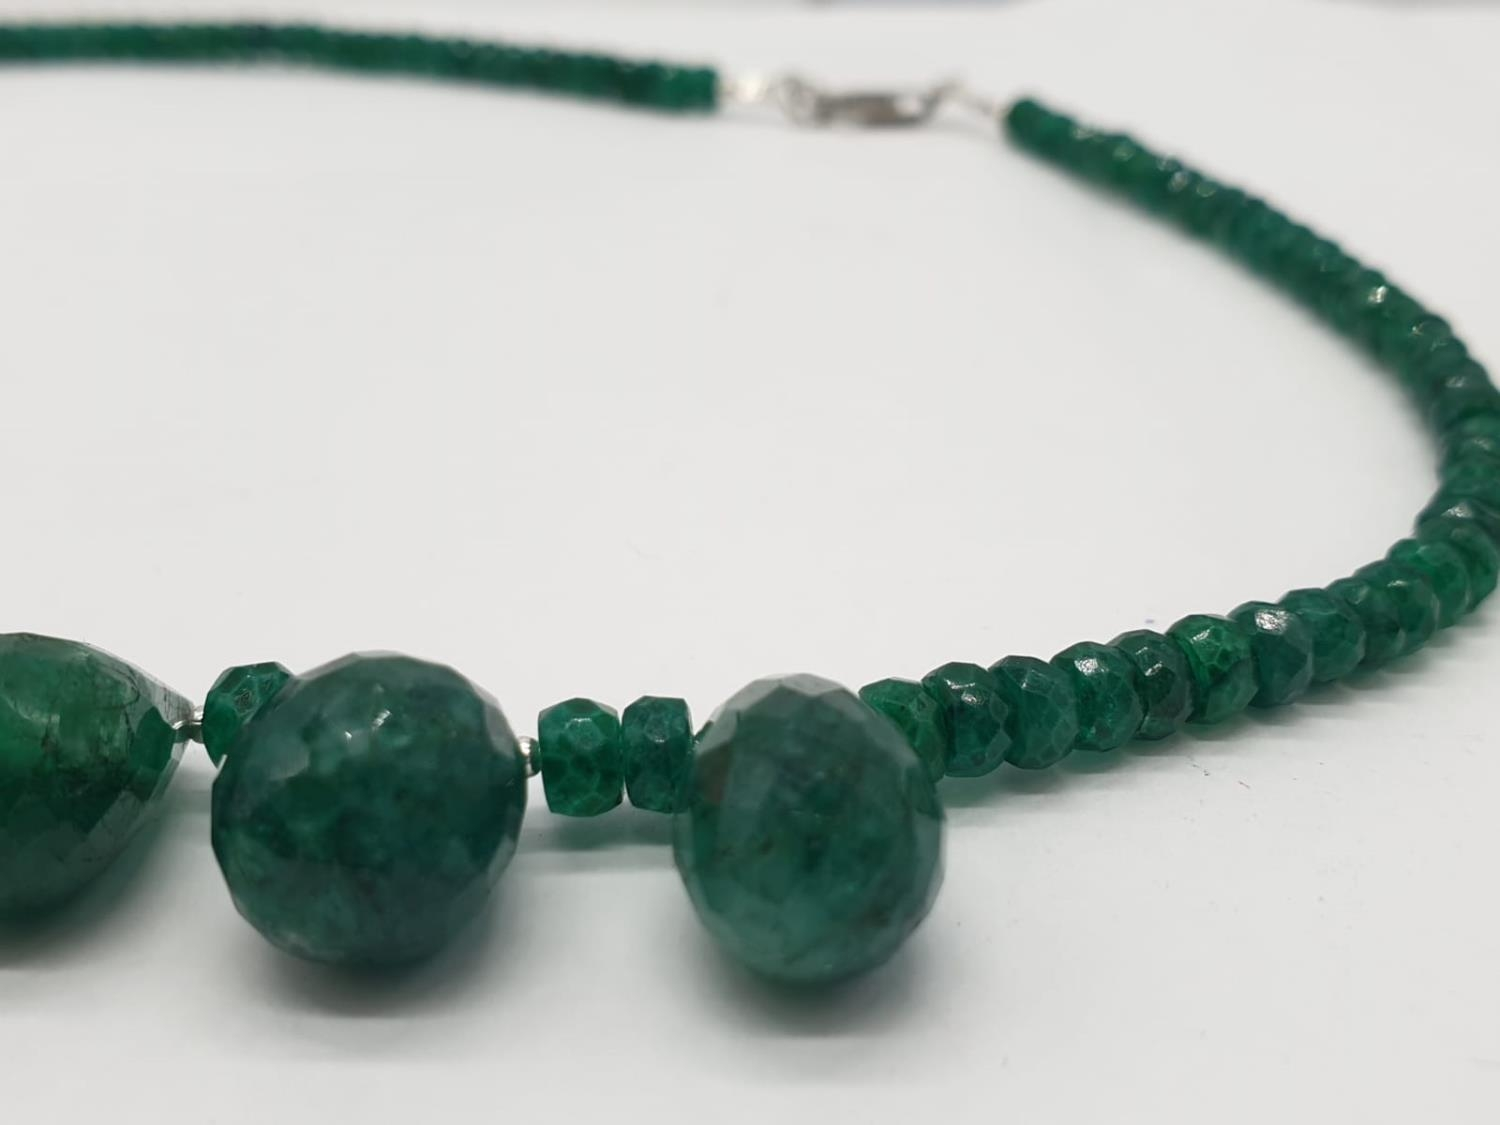 A Emerald Drops Necklace With Matching Dangler Earrings